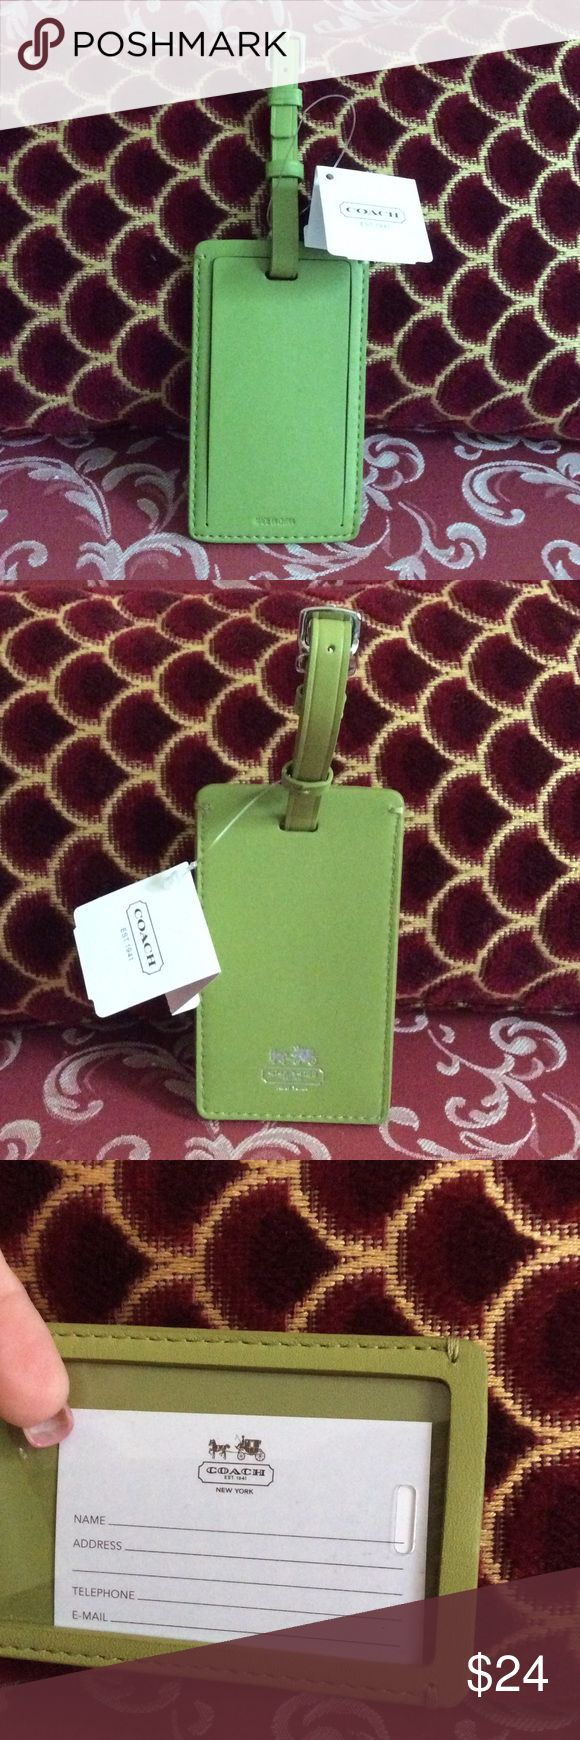 Authentic brand new Coach Luggage Tag Beautiful and new with tags, green Coach Luggage Tag.  Inside has clear coated plastic covering name & address tag.  Perfect condition. Coach Other